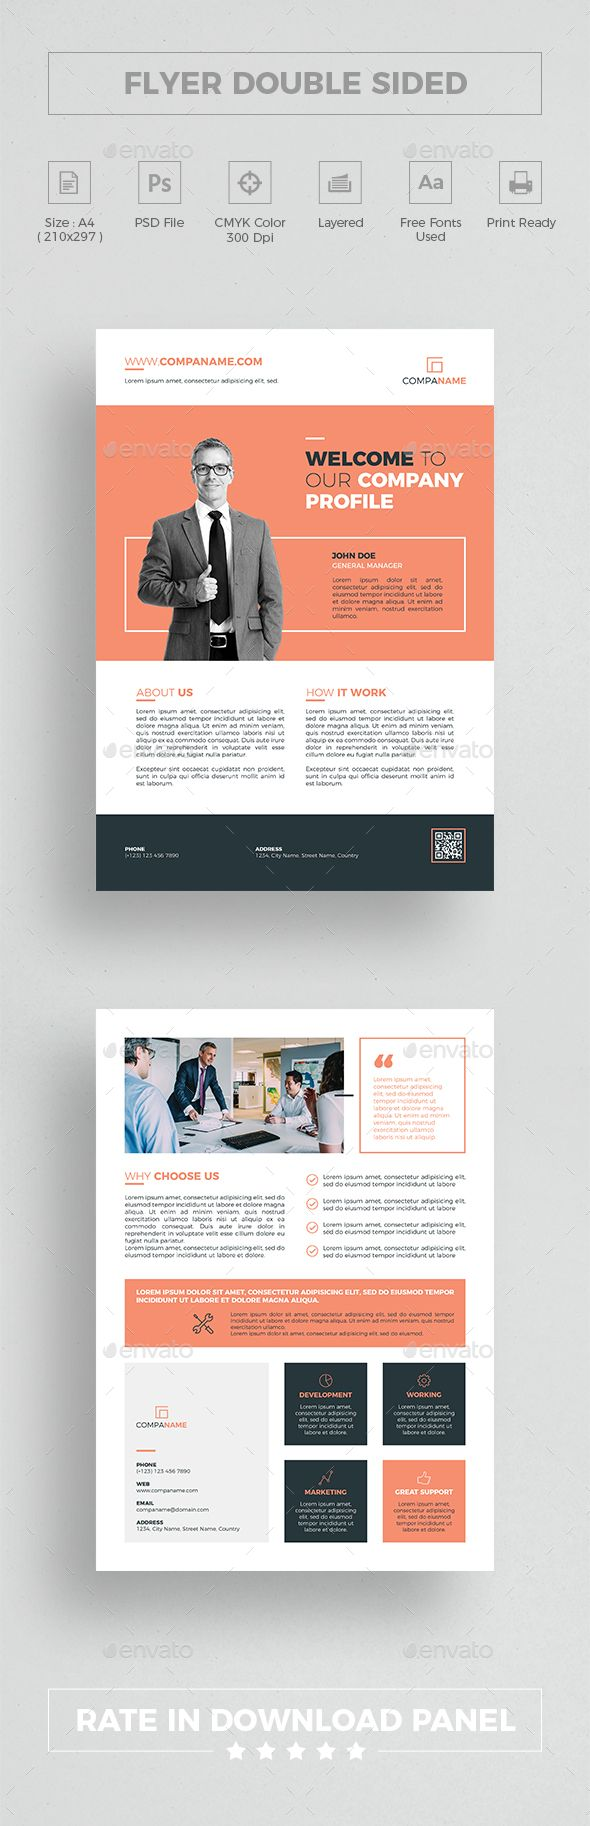 Flyer Double Sided | Flyer template, Template and Company profile